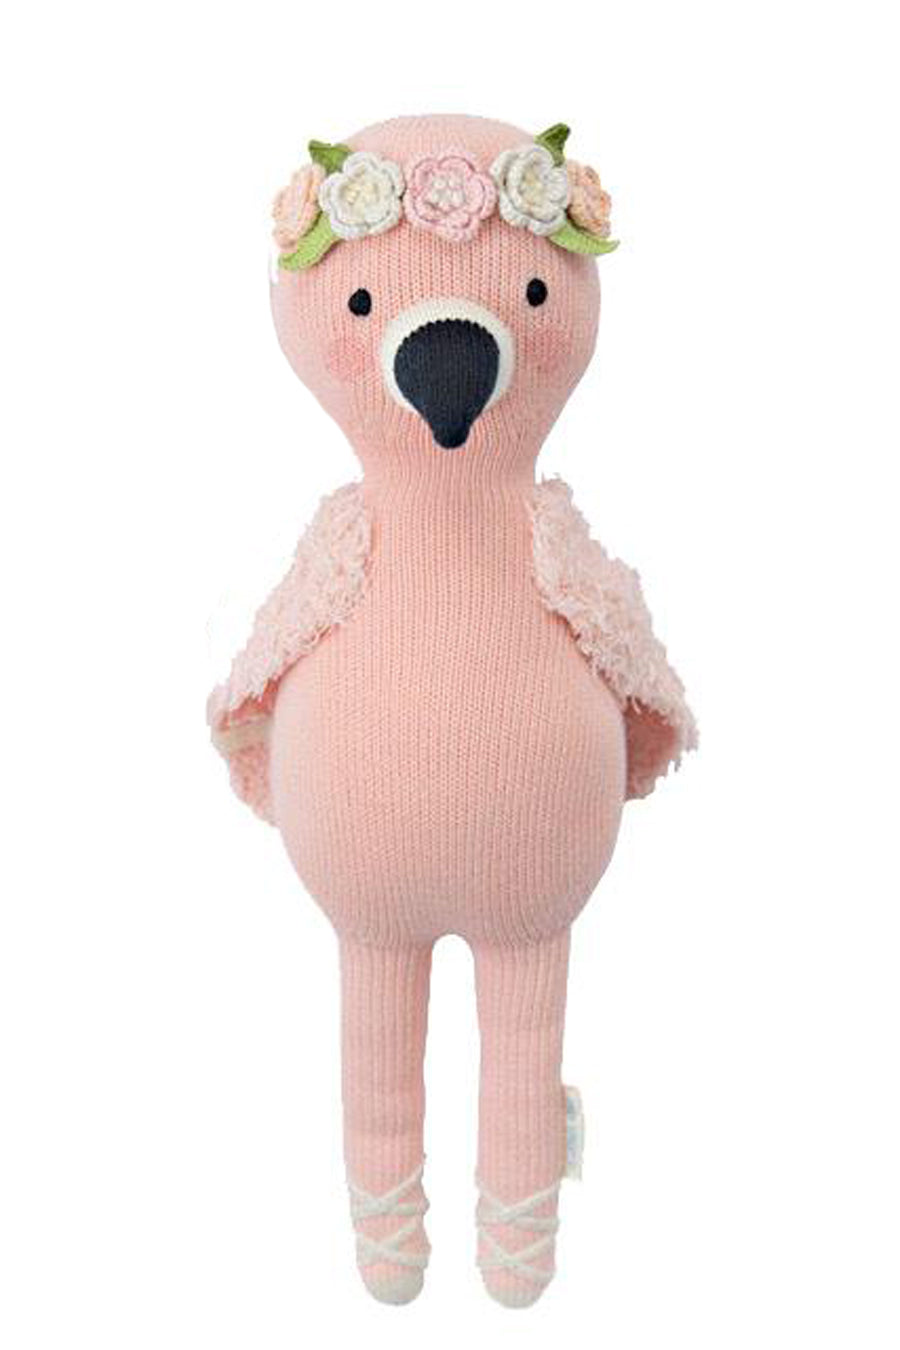 Penelope the Flamingo Knit Doll